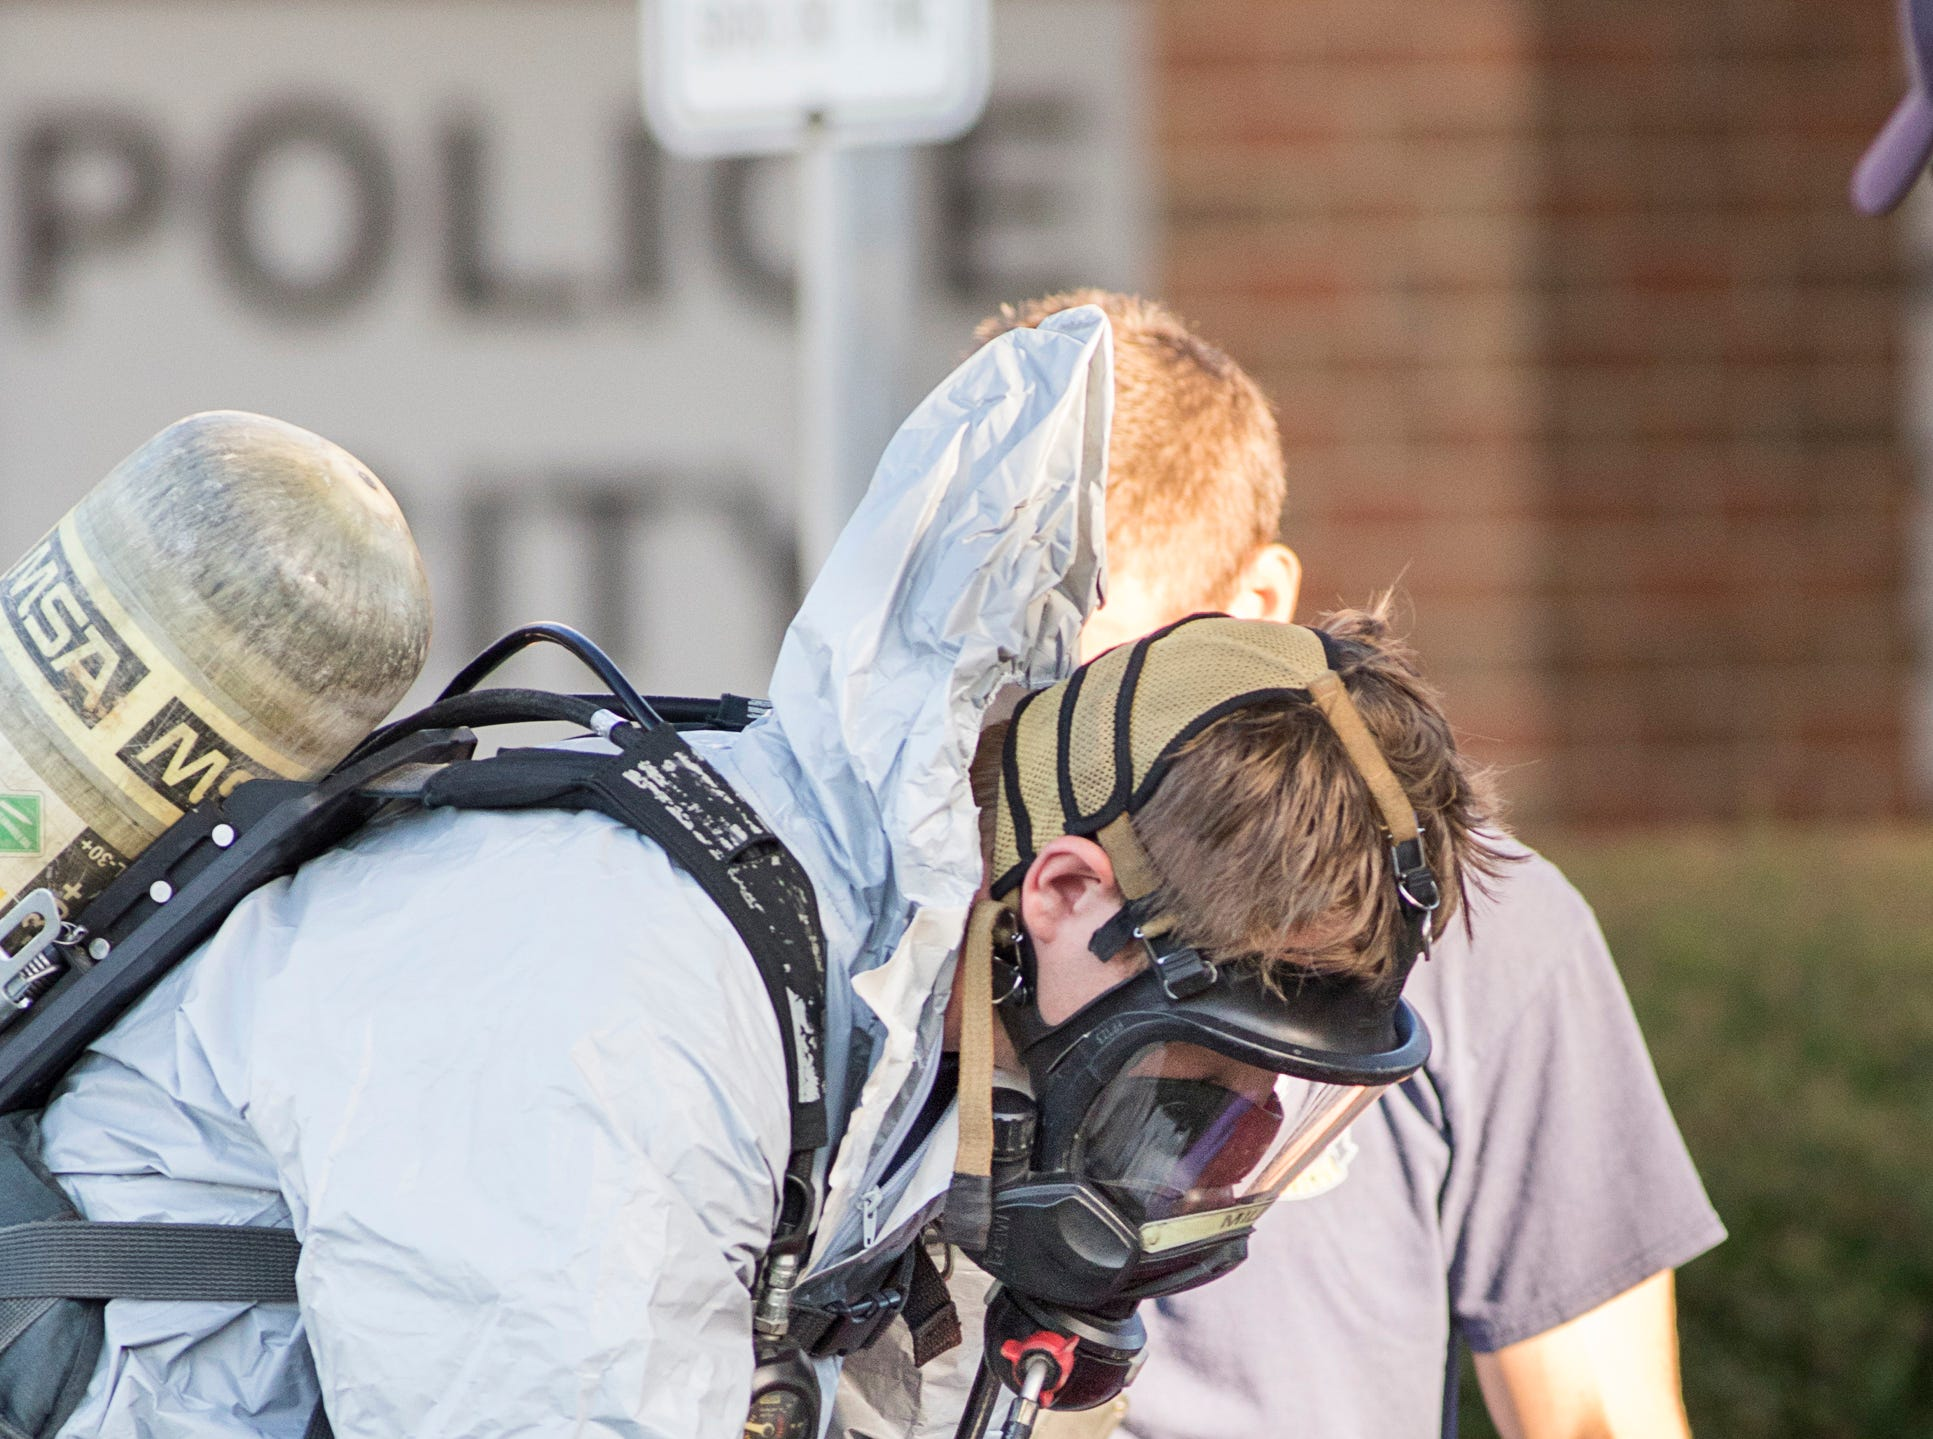 The Escambia County Hazmat team removes questionable material after five police officers were sent to the hospital from the Pensacola Police Department Headquarters in Pensacola on Friday, August 3, 2018.